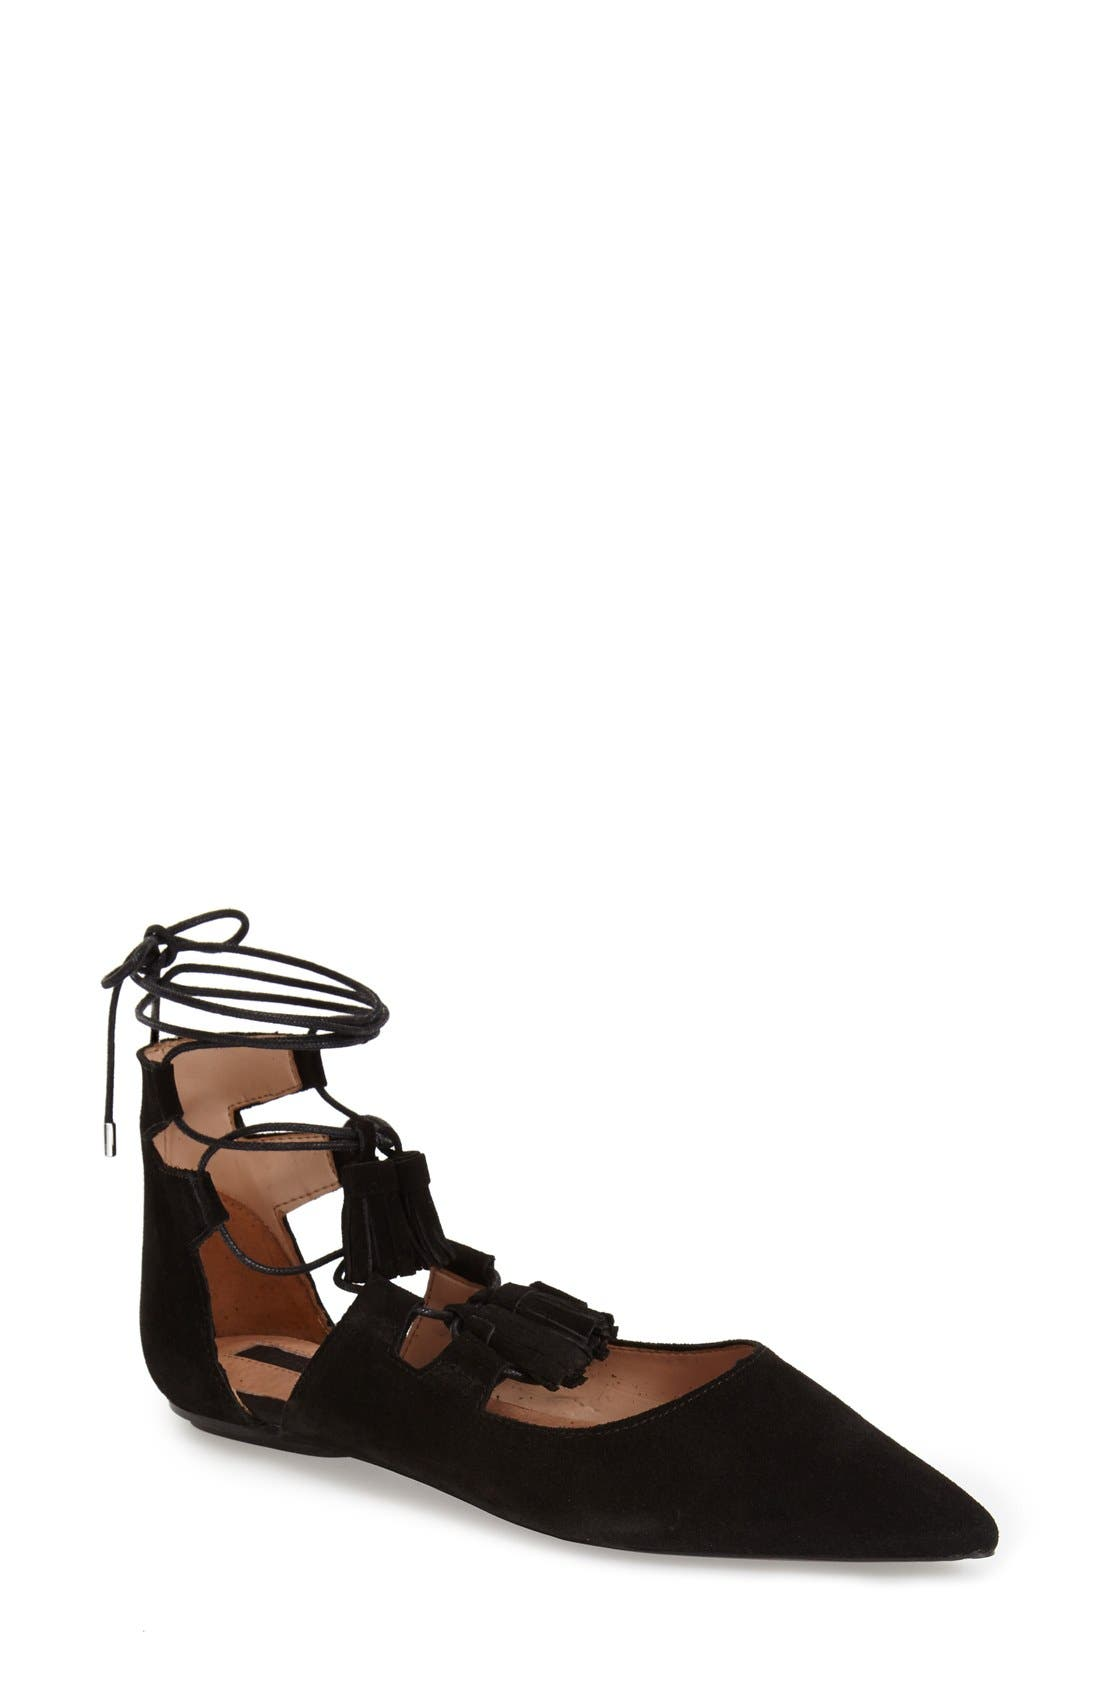 'Leather Kiss' Pointy Toe GhillieFlat,                         Main,                         color, 001